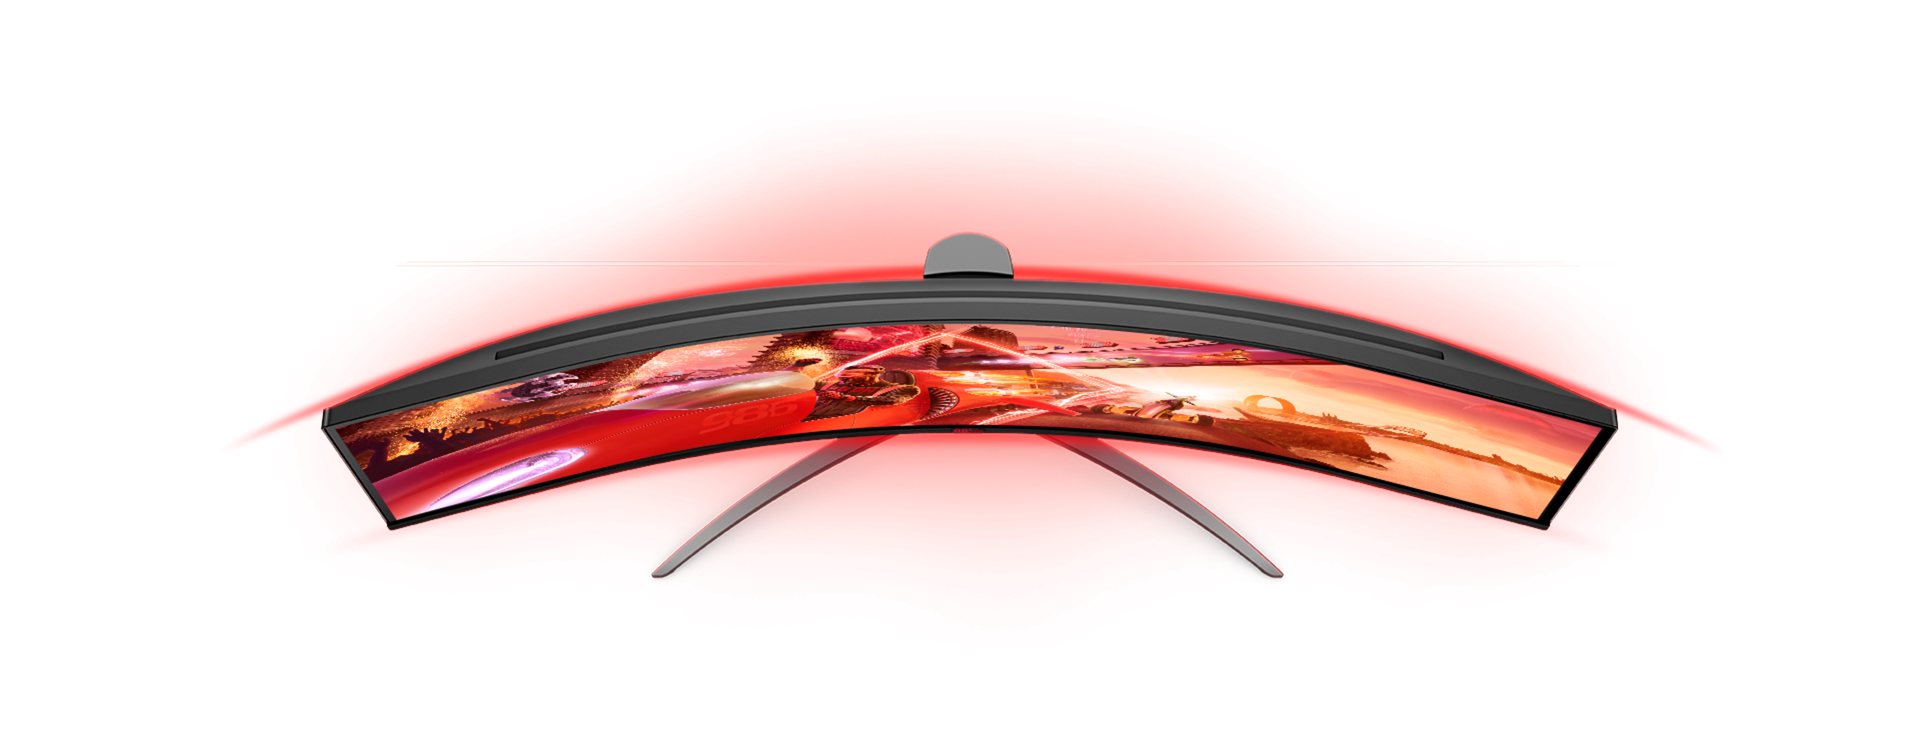 AGON_AG493_FV_FW_CURVED.png